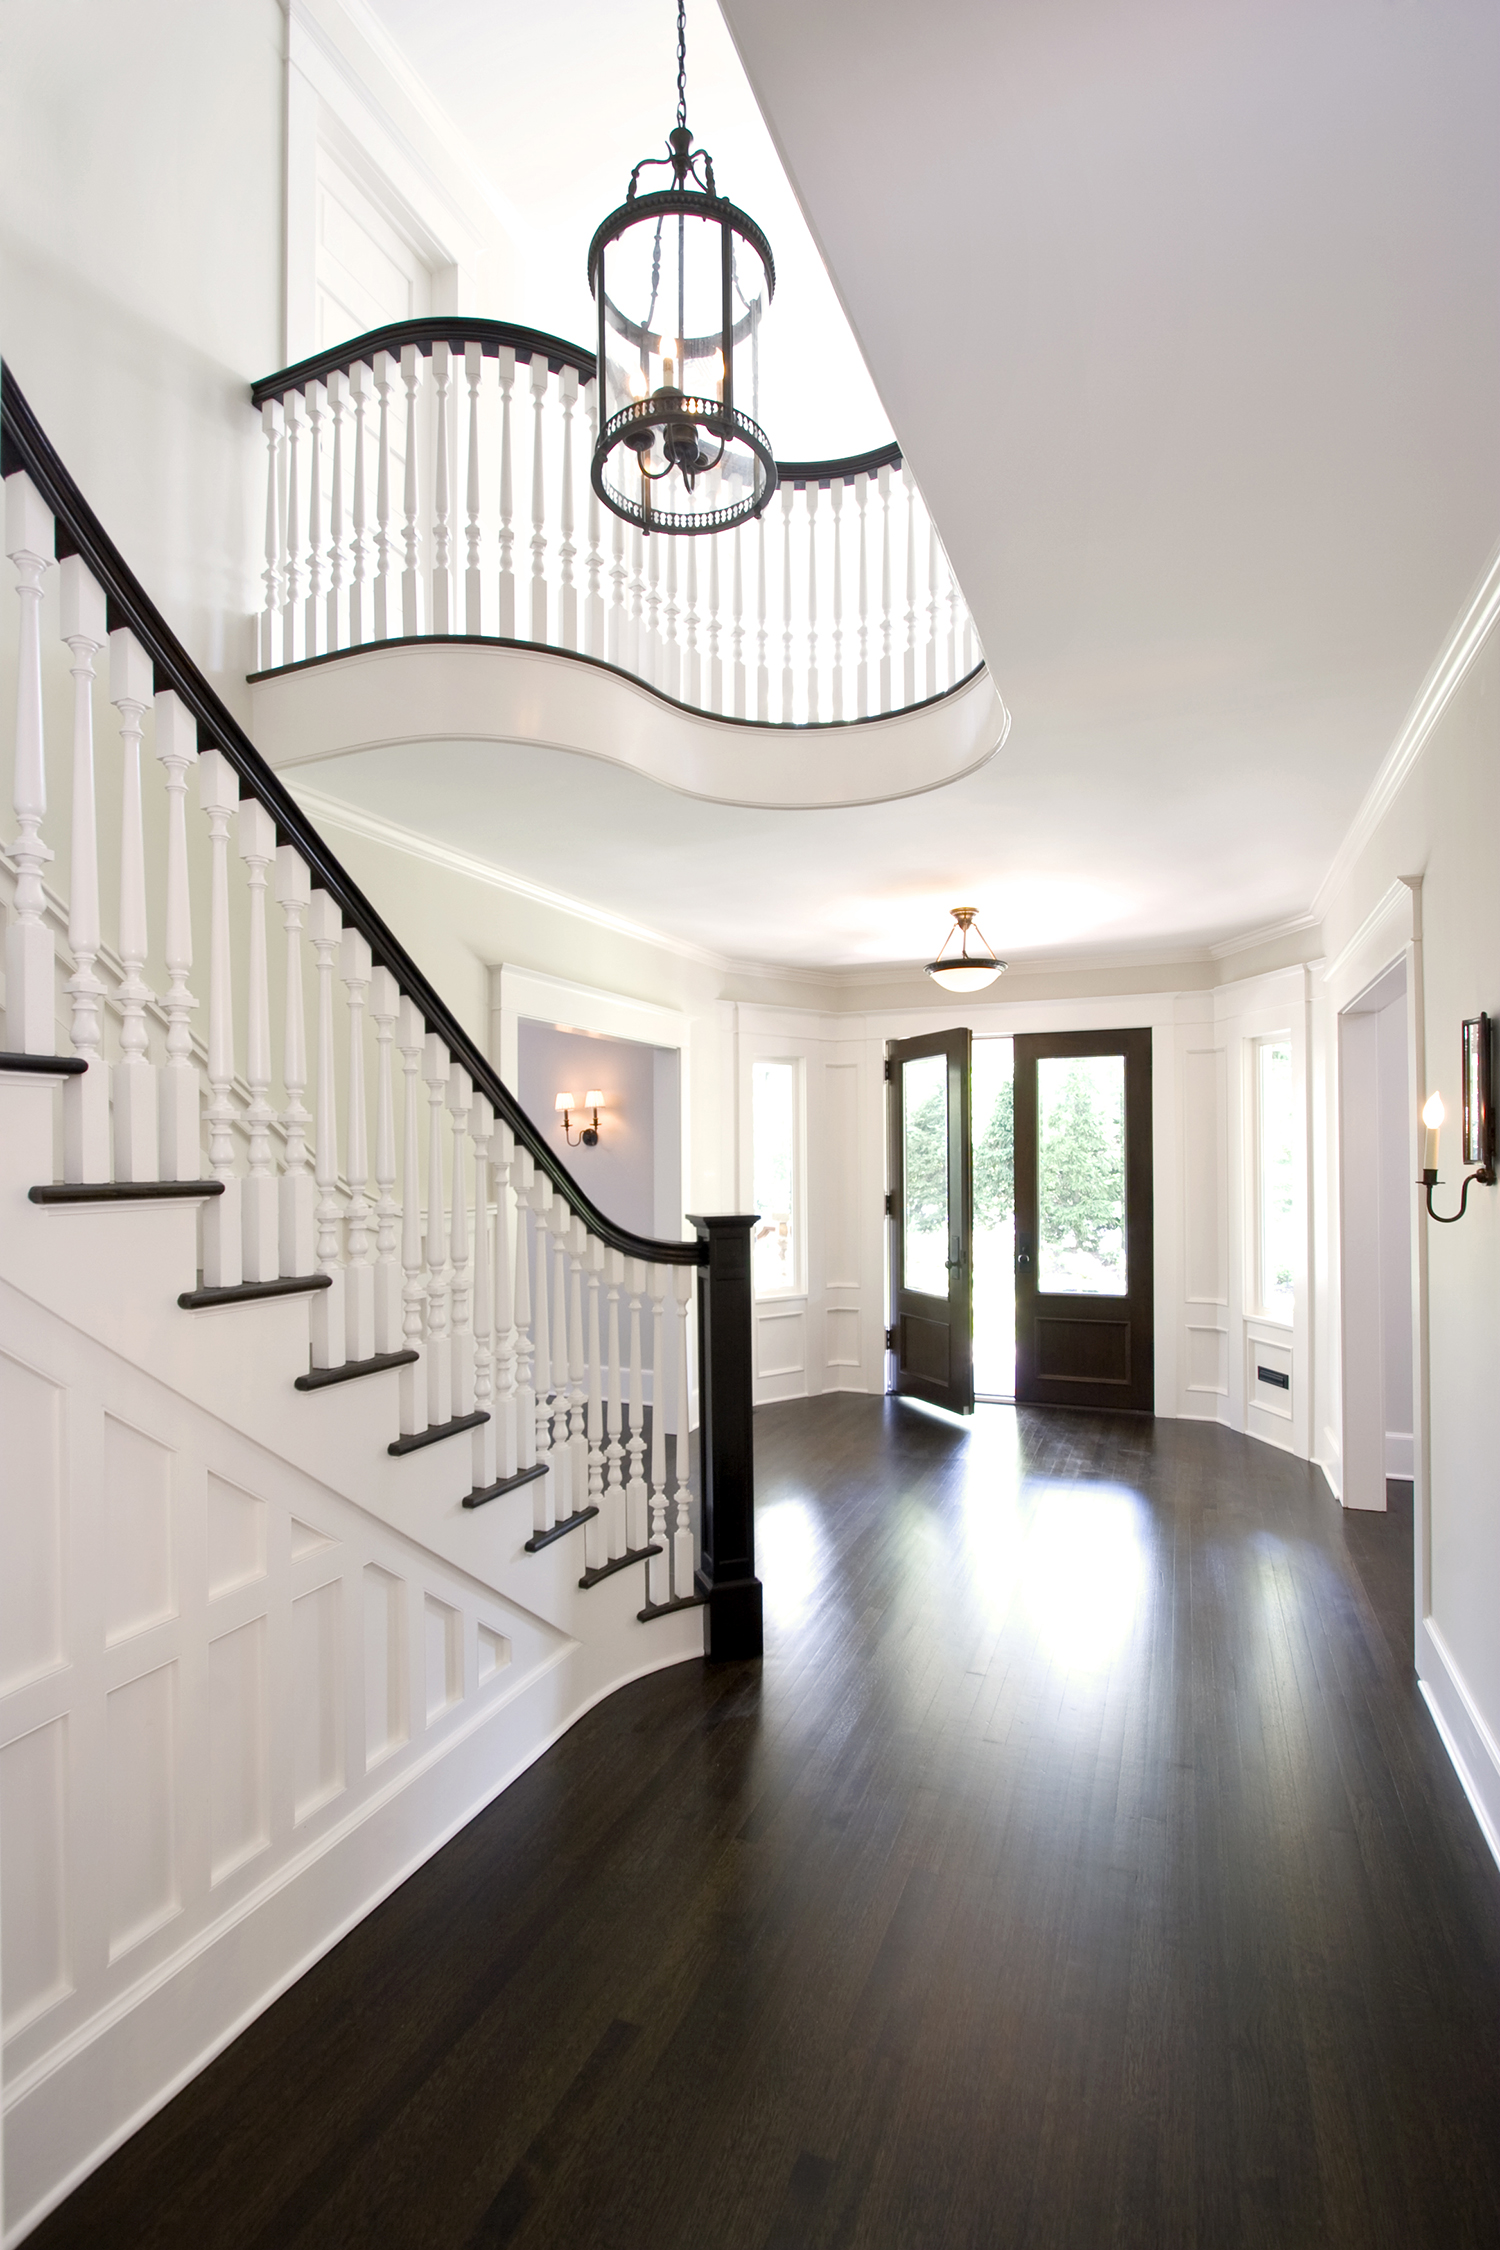 New custom mahogany double front doors with beveled glass detail and side lites enhance the entry foyer experience by giving views into the landscape and allowing natural light in.